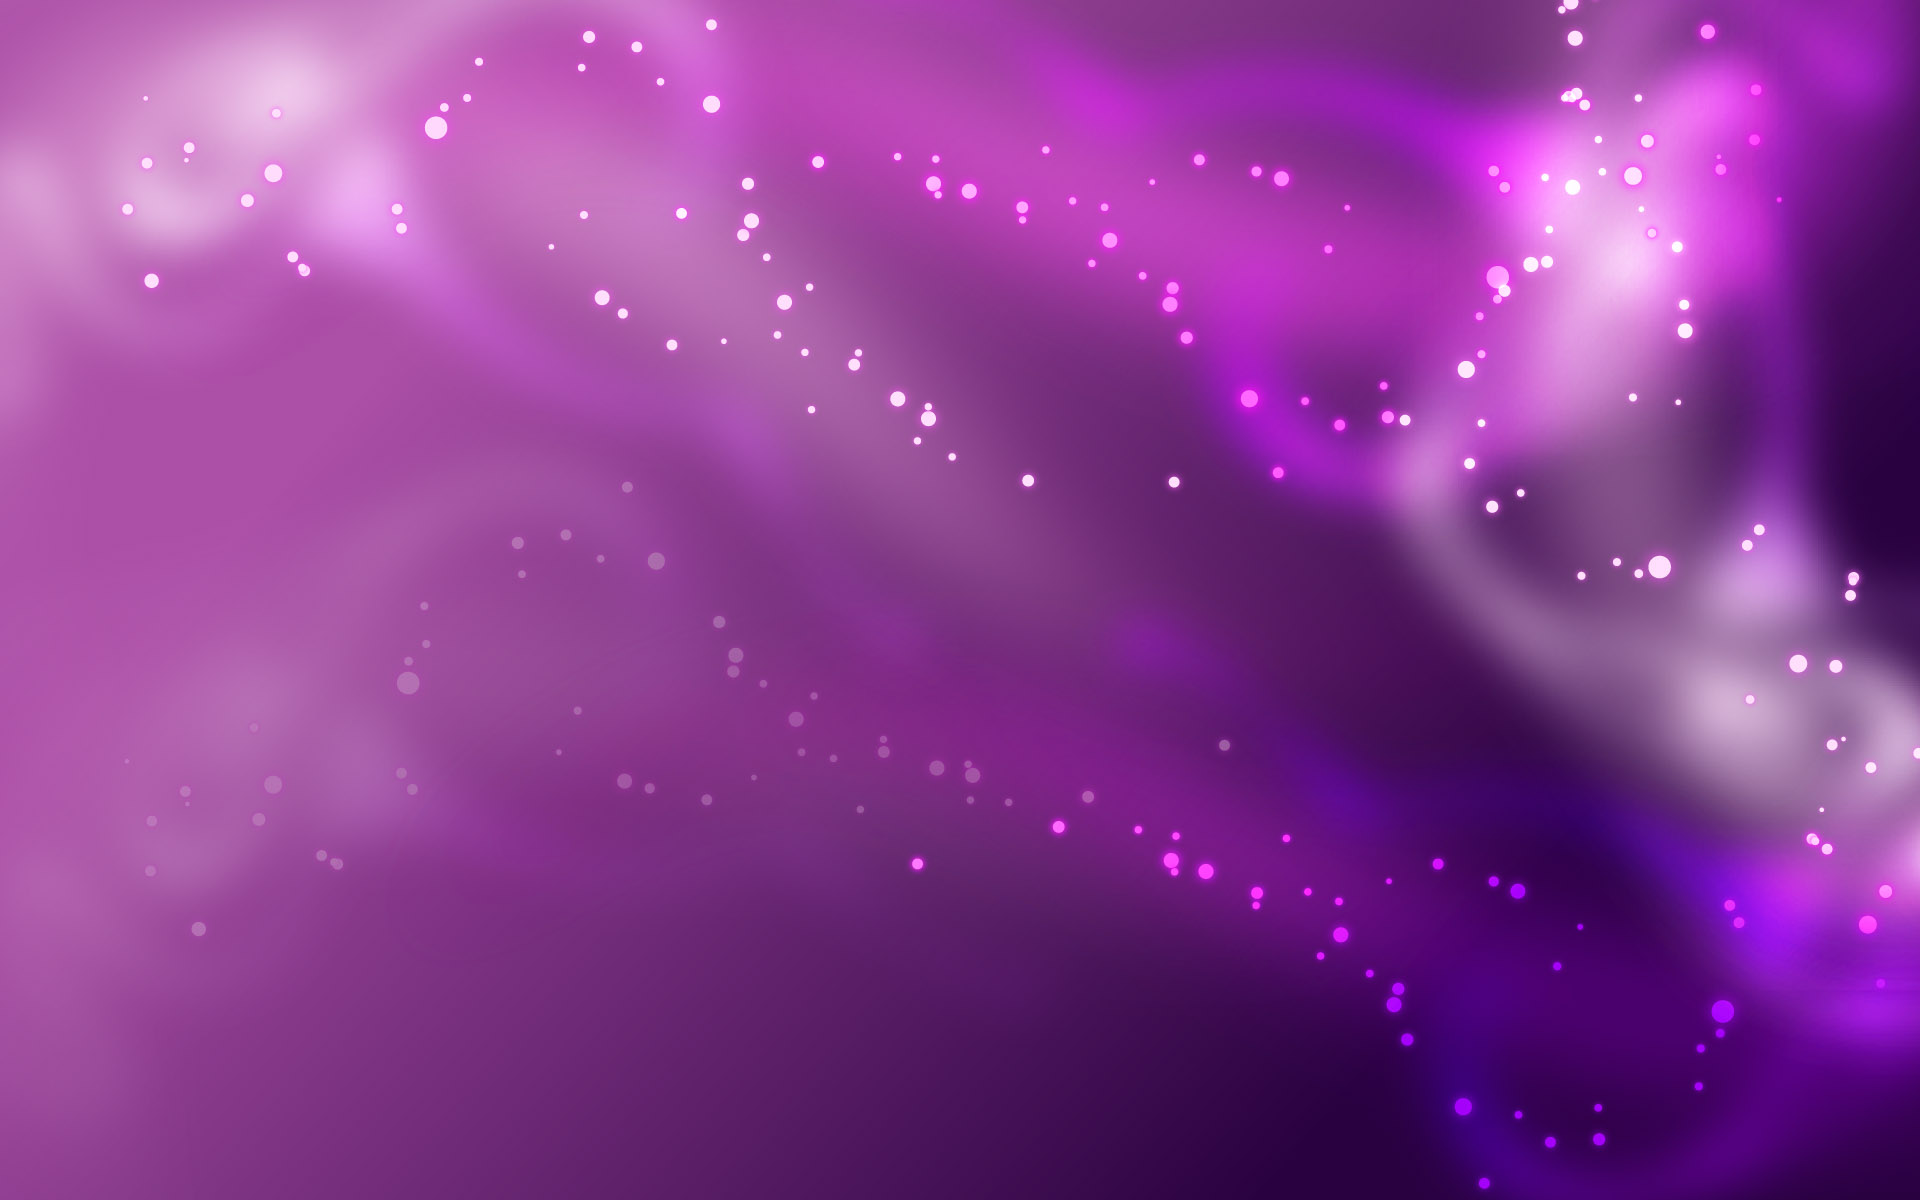 45 Stunning and Decent Purple Backgrounds takedesigns 1920x1200